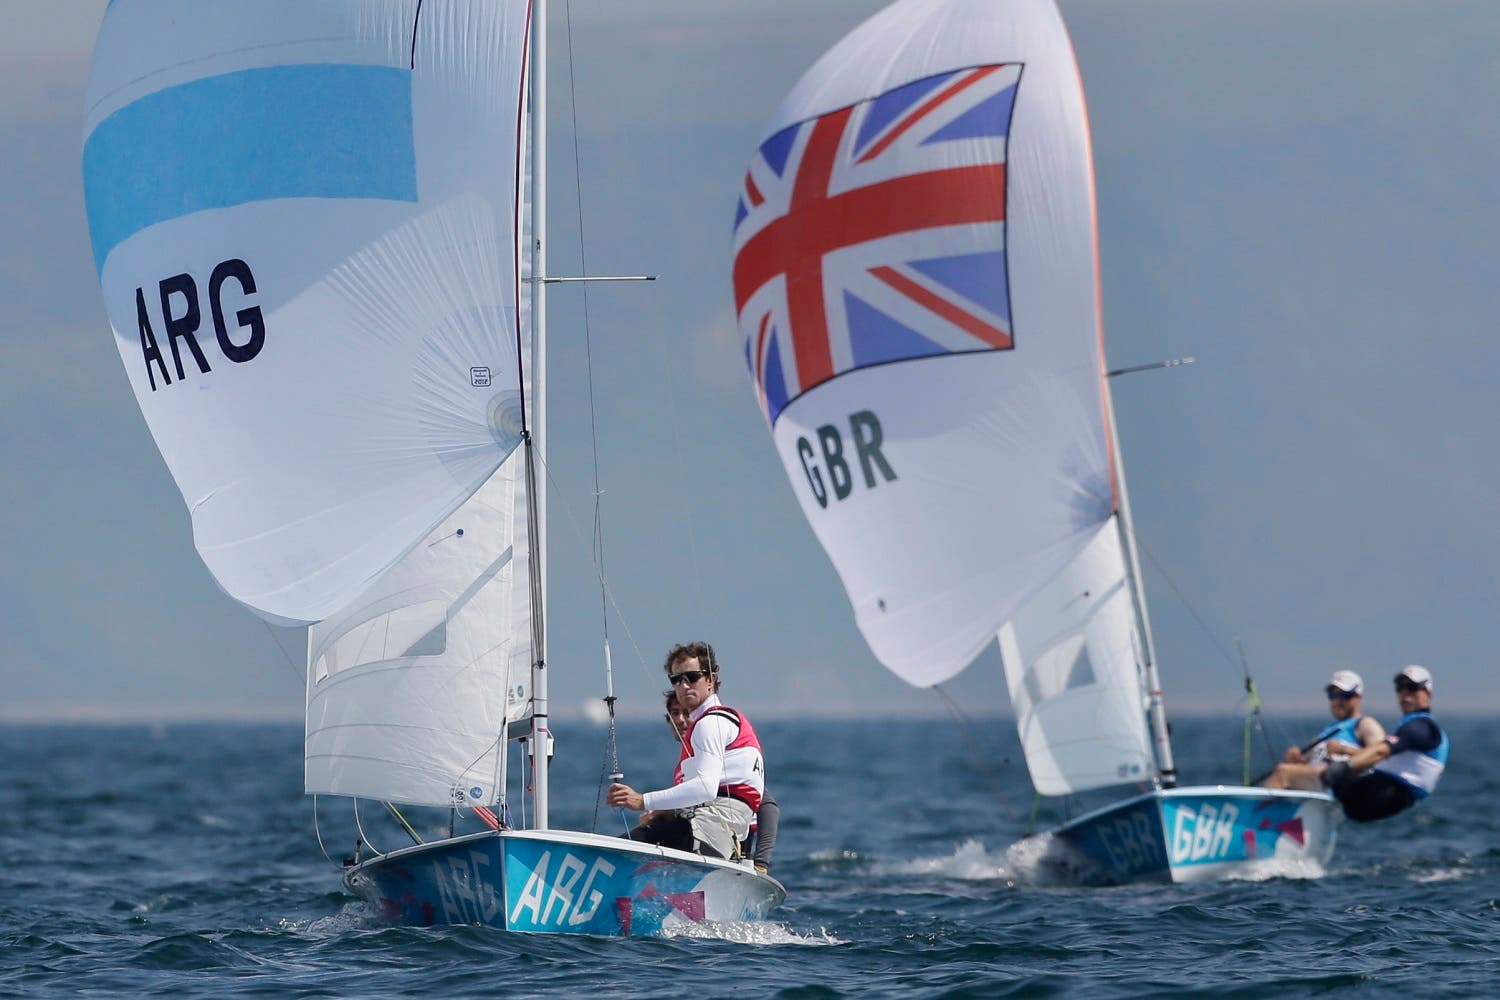 Argentina's Lucas Calabrese and Juan de la Fuente, foreground, and Great Britain's Luke Patience and Stuart Bithell compete during the 470 men's class medal race at the London 2012 Summer Olympics, Friday, Aug. 10, 2012, in Weymouth and Portland, England. Australia's Mathew Belcher and Malcolm Page won the gold medal, Great Britain's won the silver and Argentina's won the bronze. (AP)